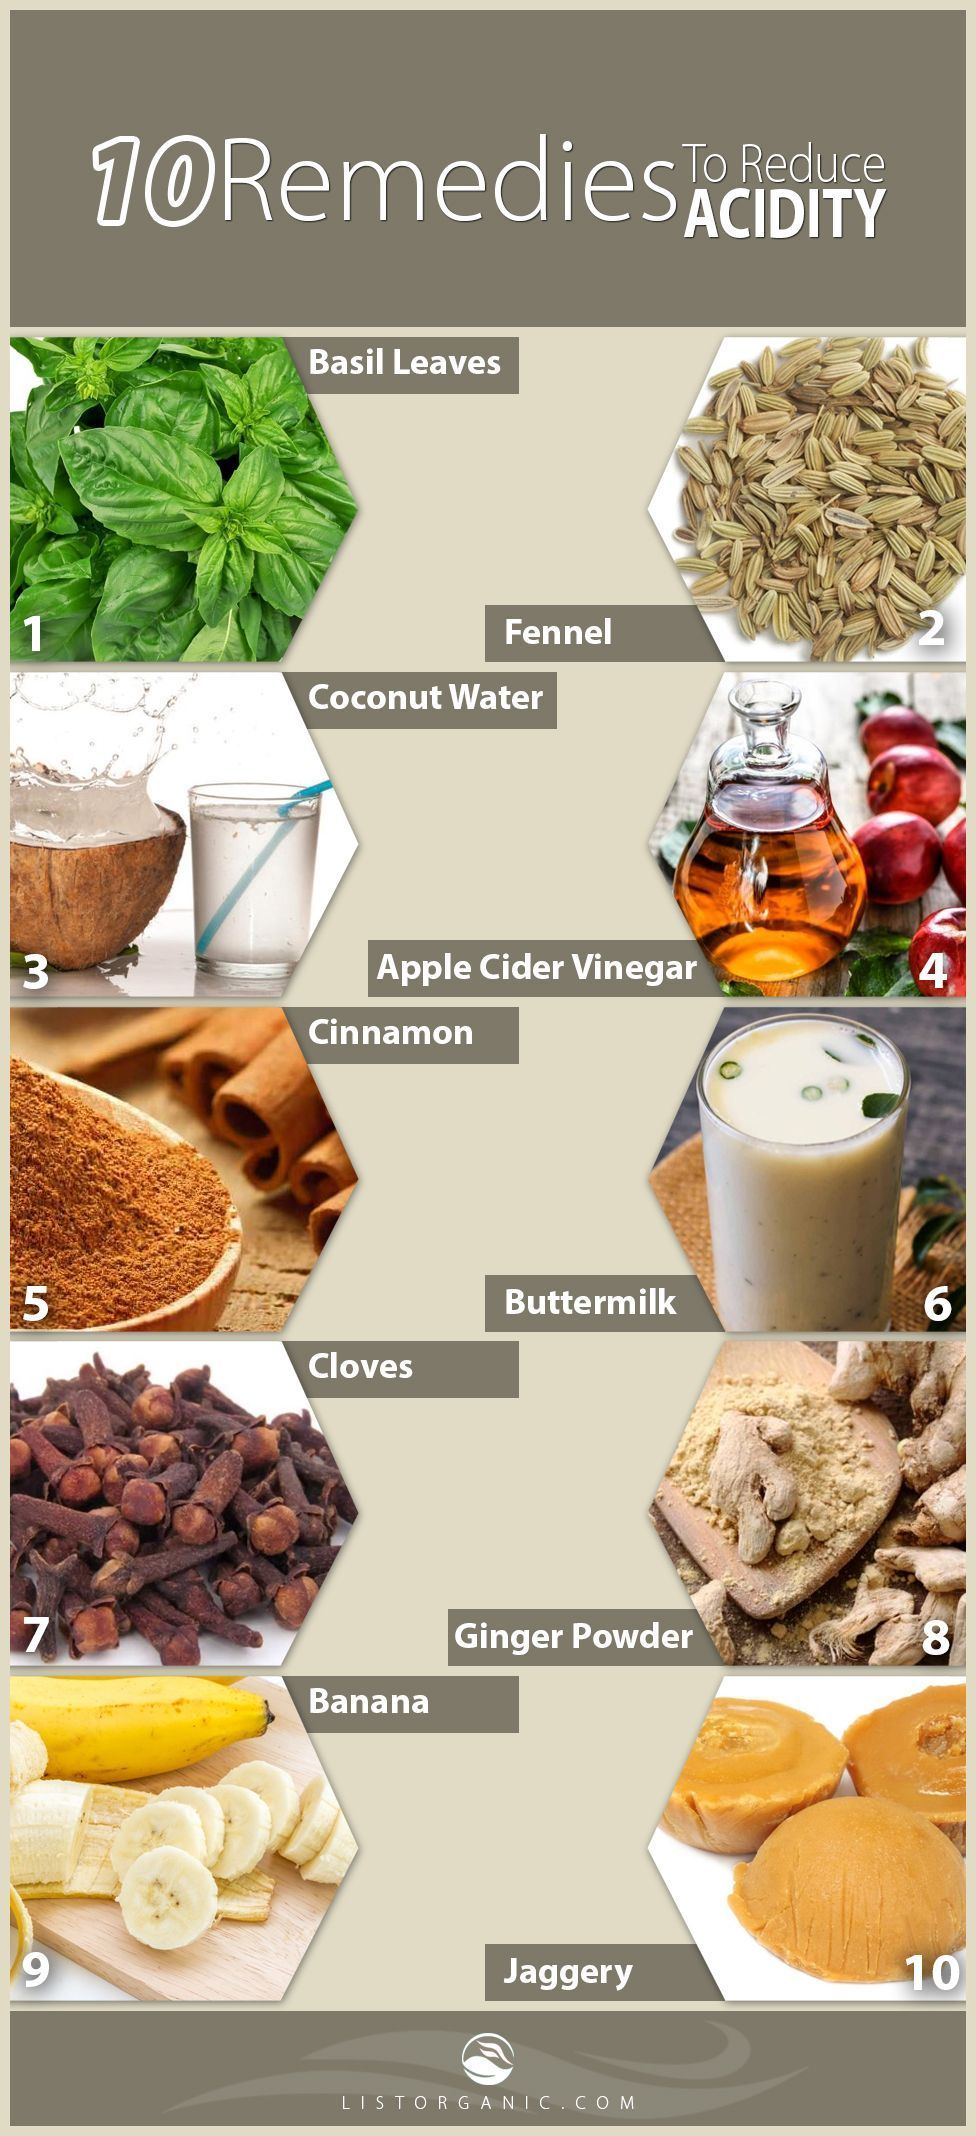 Top 10 The Amazing Home Remedies For Acidity